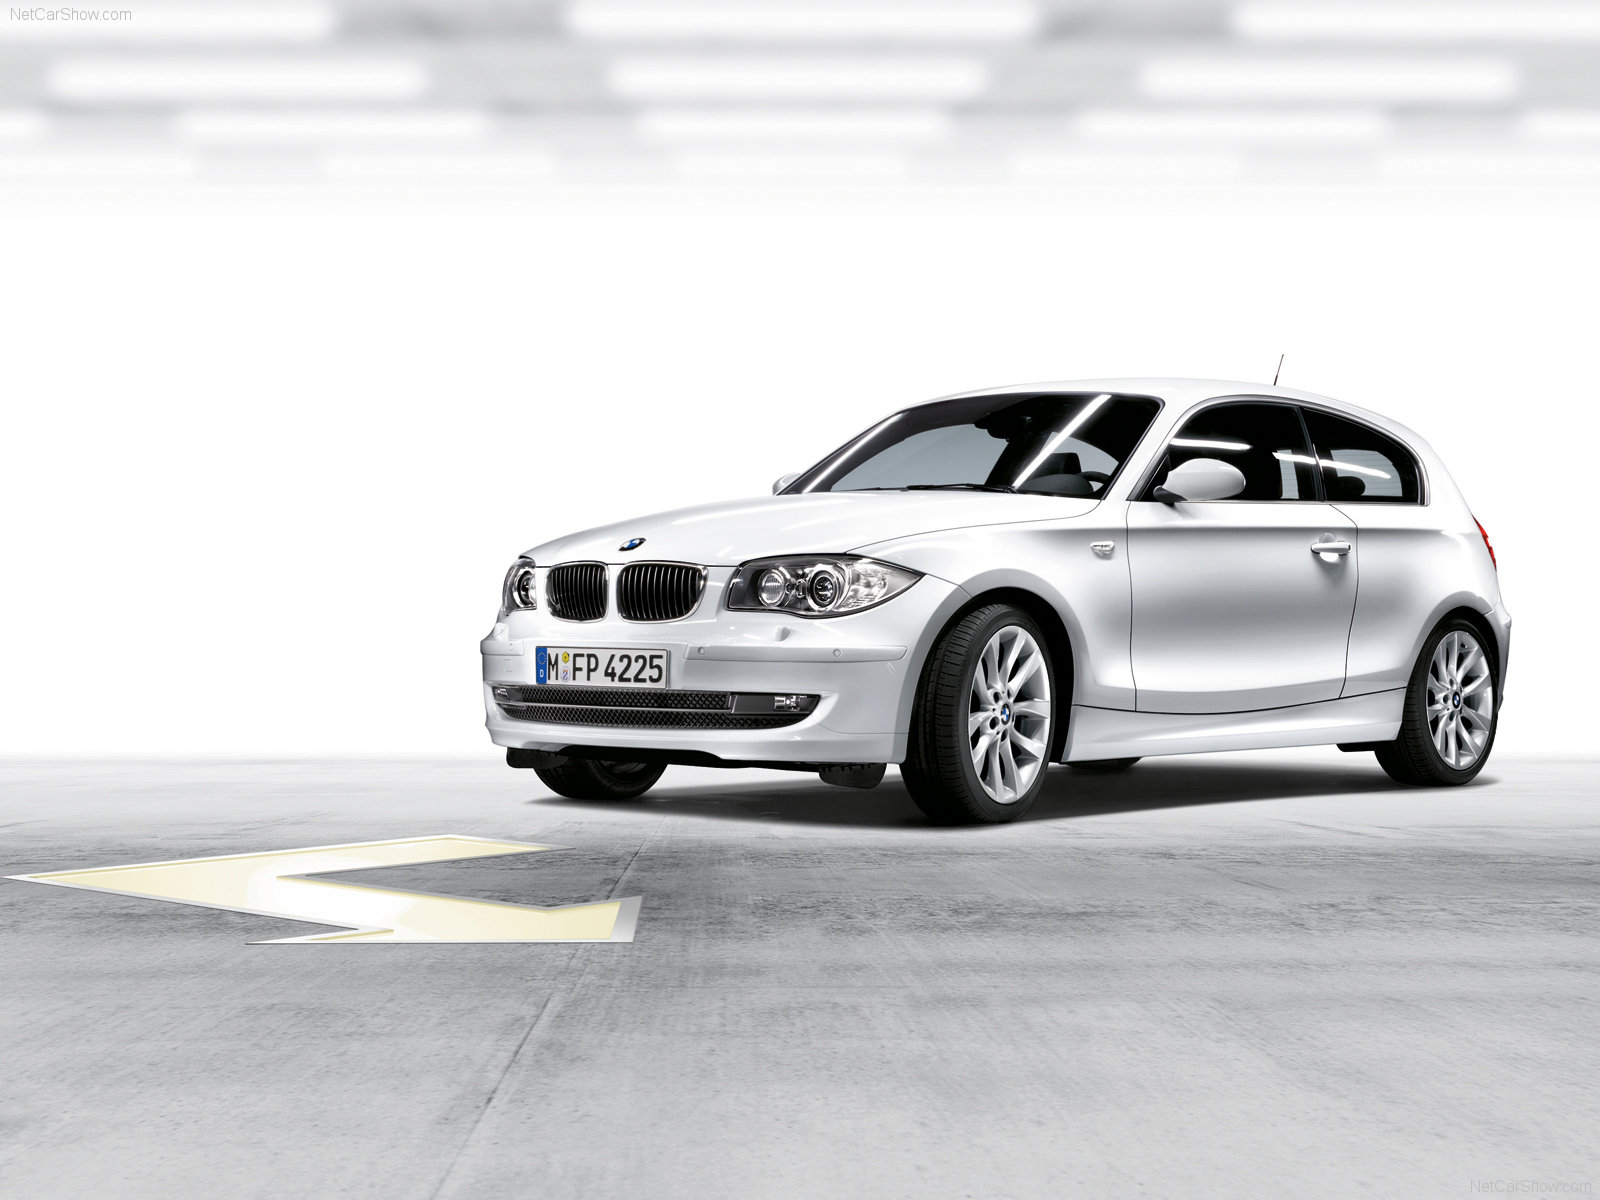 bmw 1 series 3 door e81 photos photogallery with 28 pics